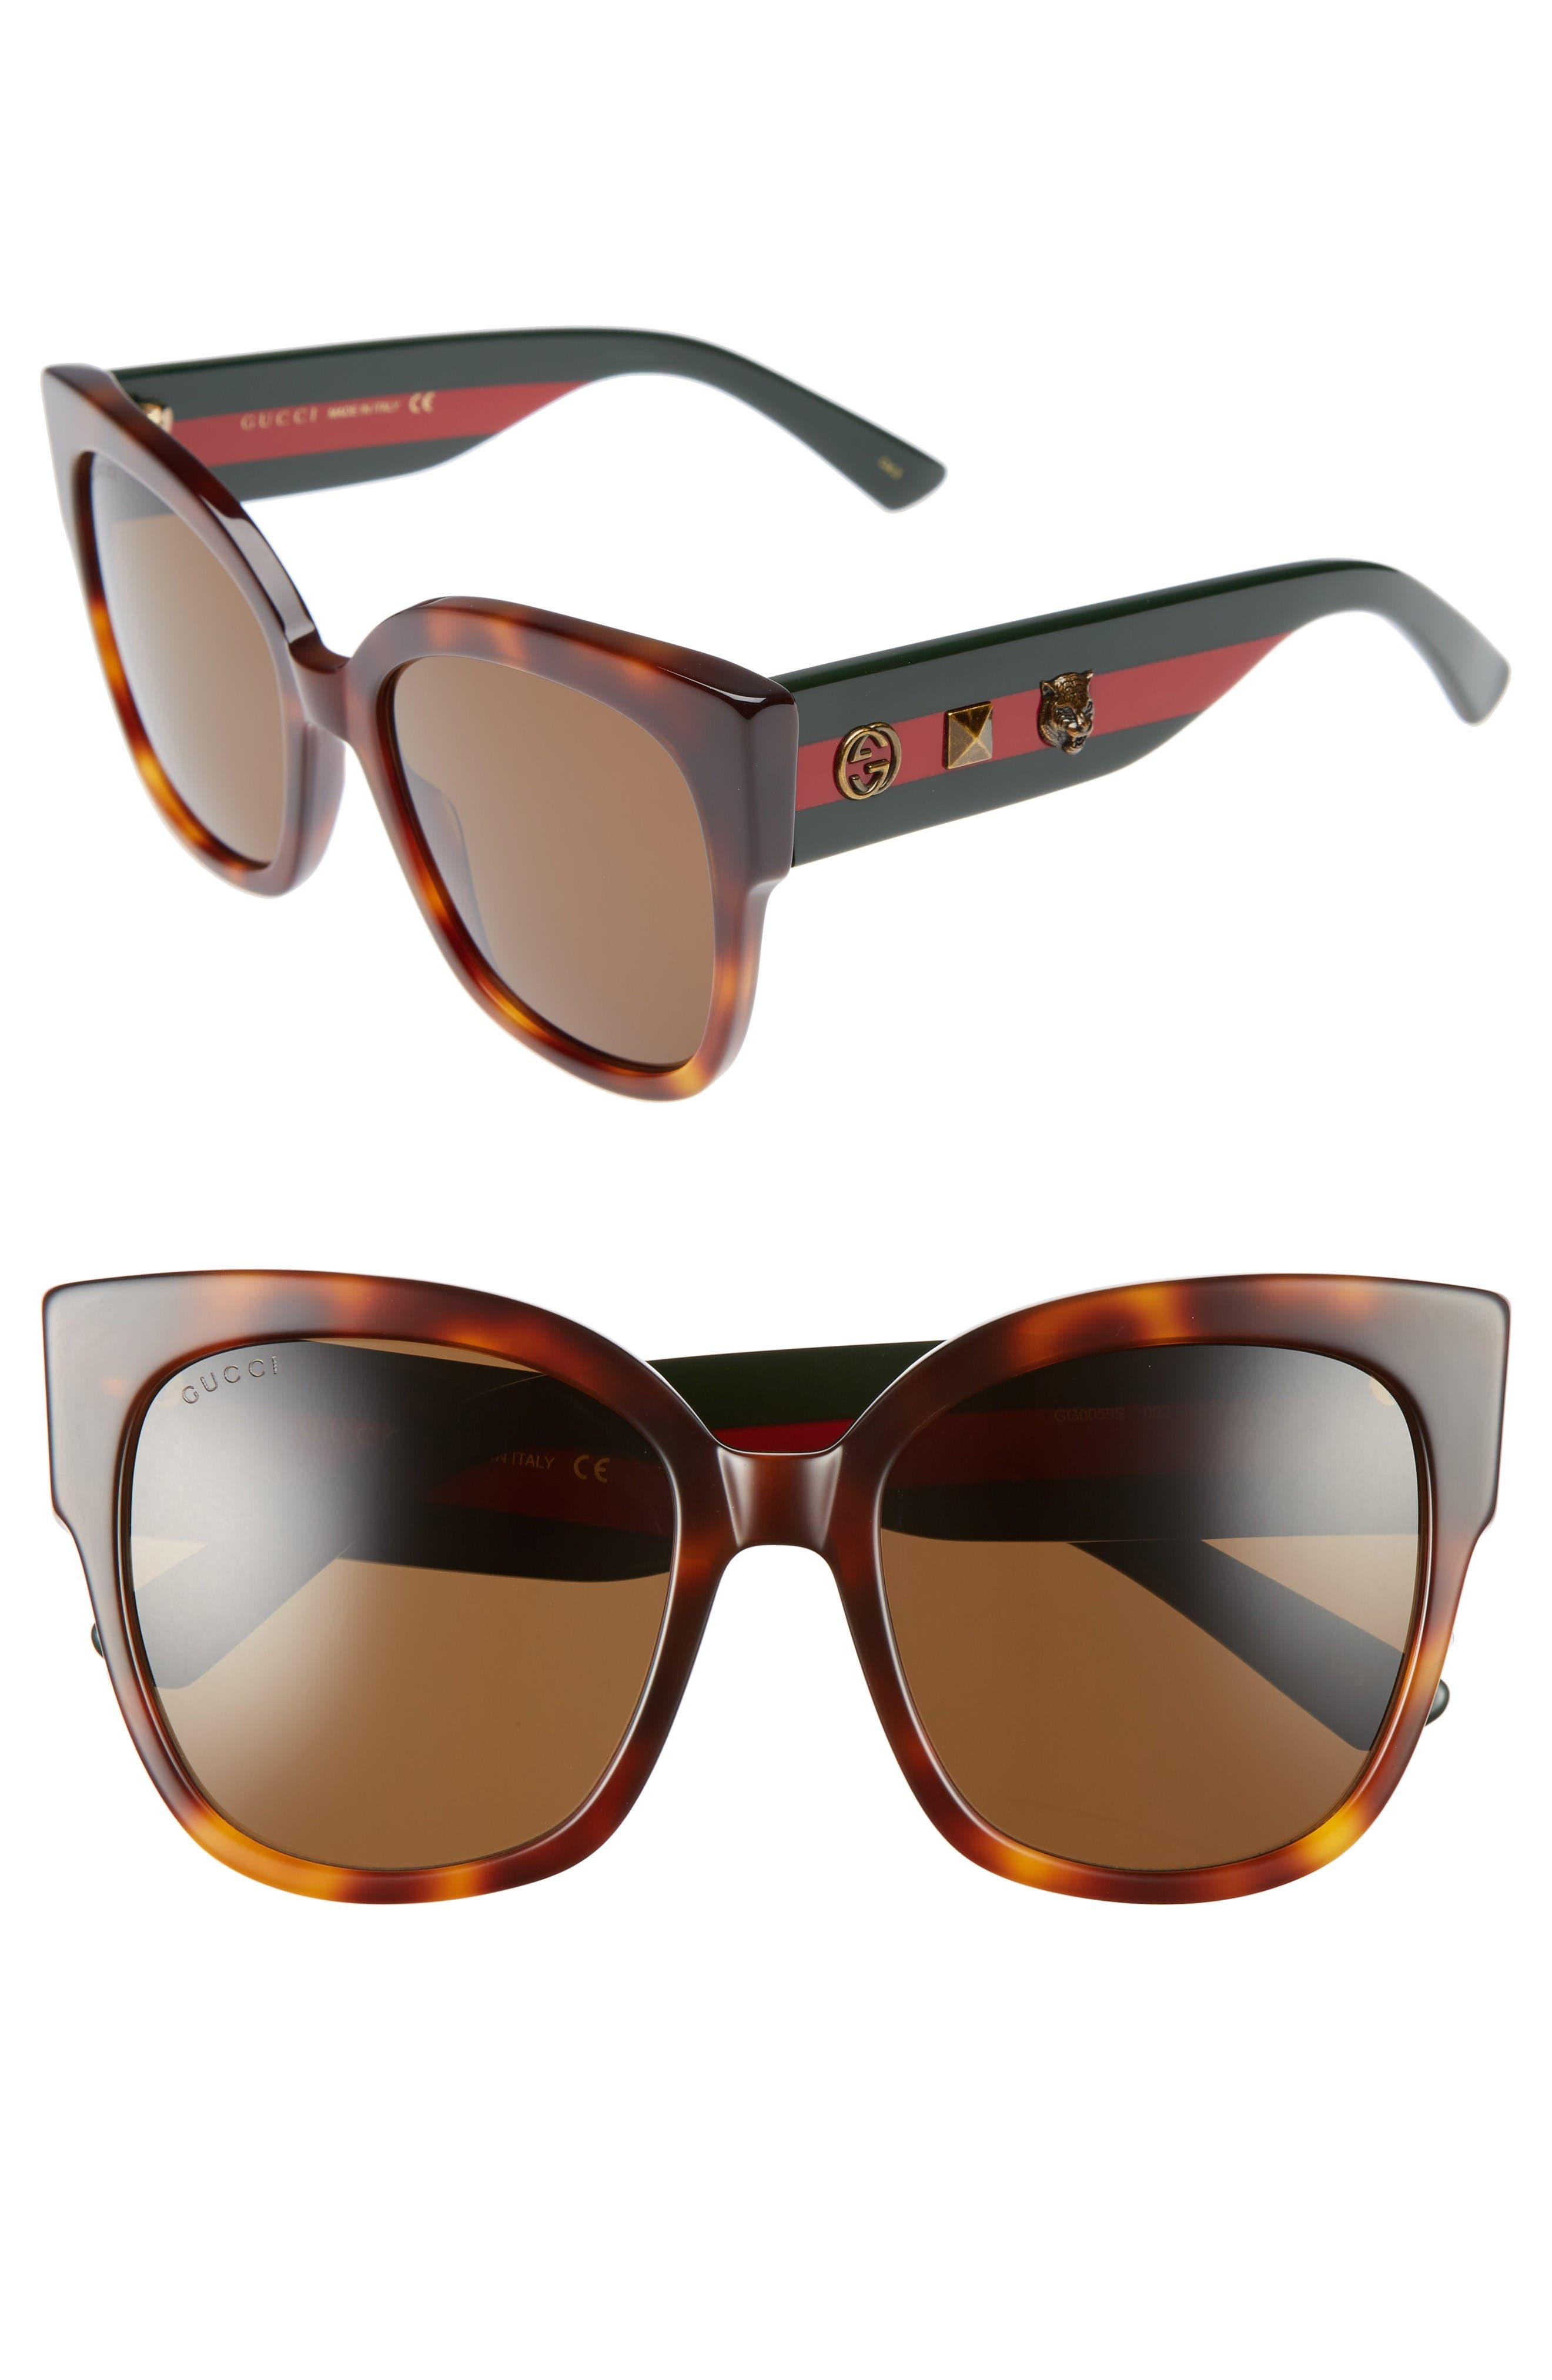 Gucci 55mm Butterfly Sunglasses